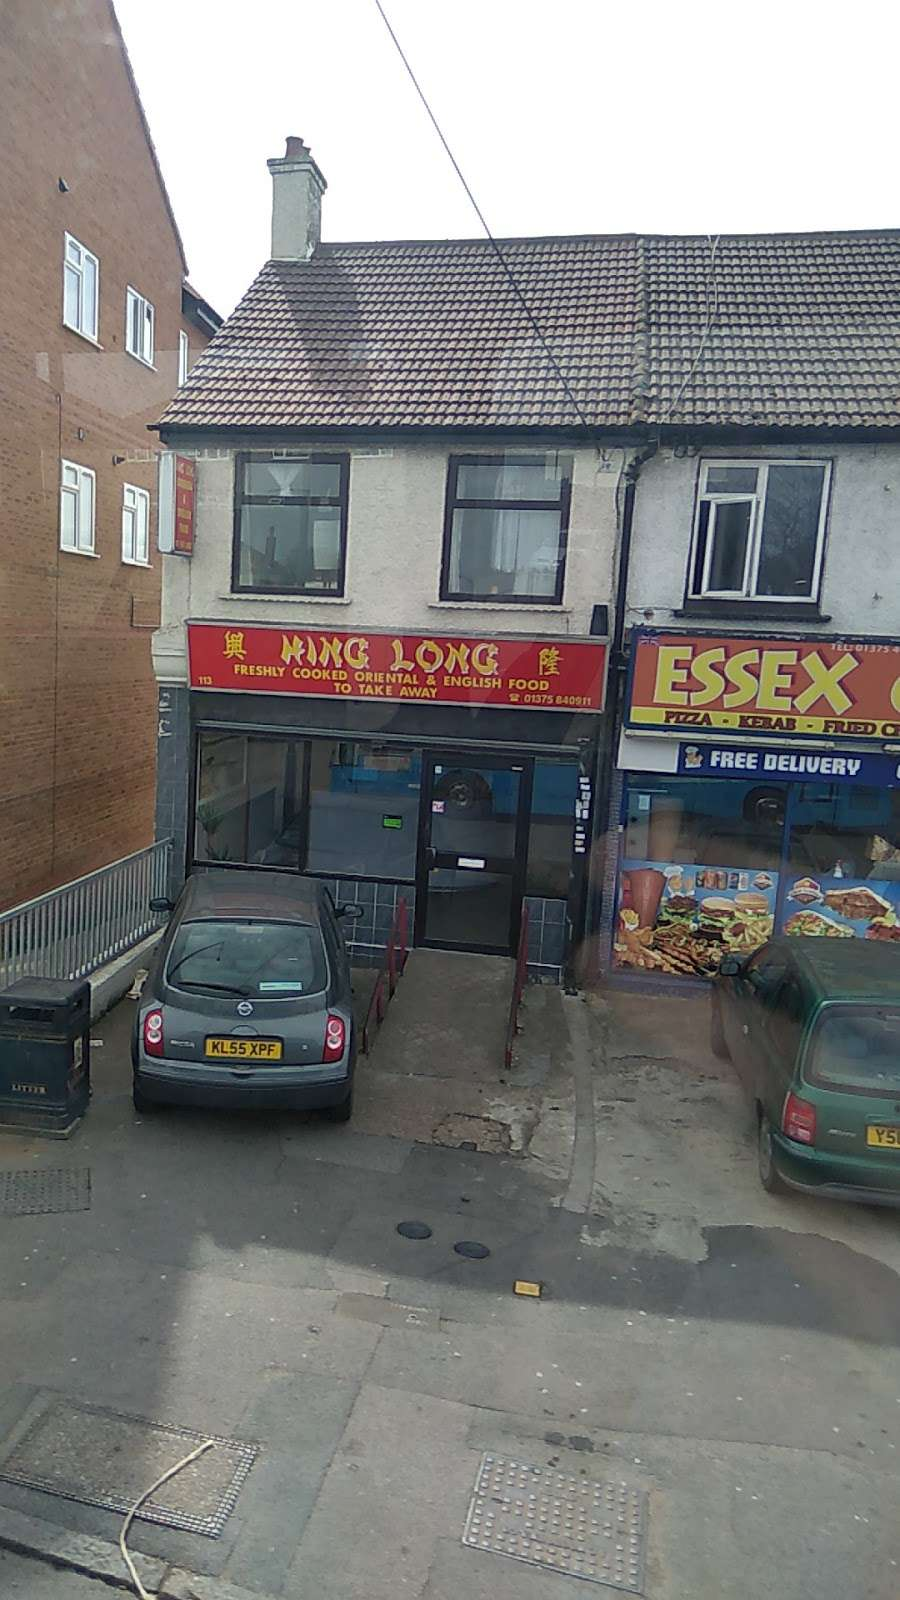 Hing Long - meal takeaway  | Photo 5 of 6 | Address: 113 River View, Thurrock, Grays RM16 4BA, UK | Phone: 01375 840911